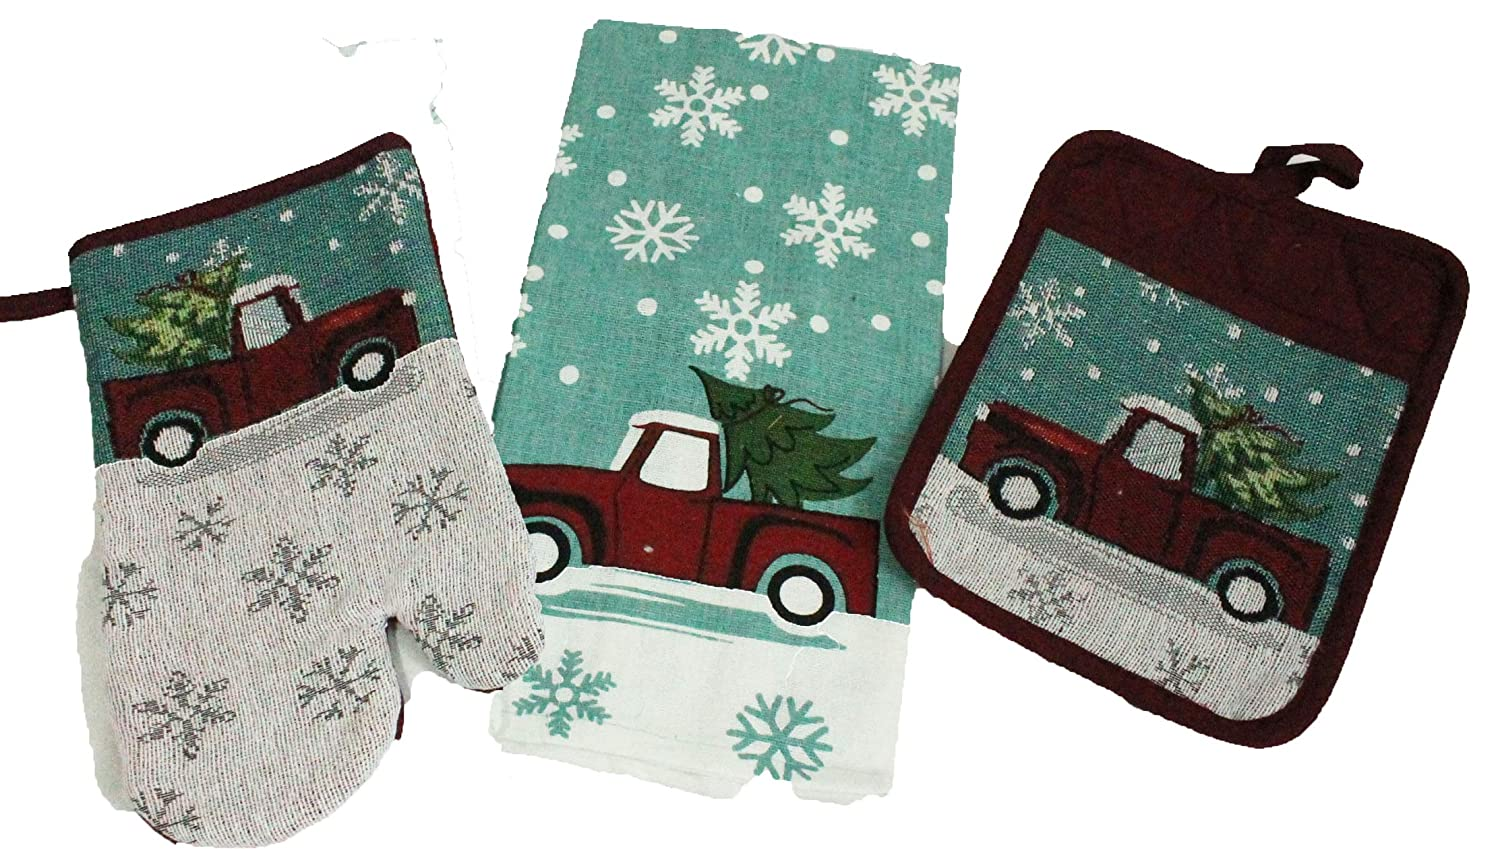 Twisted Anchor Trading Co 3 pc Vintage Truck Merry Christmas Kitchen Decor Set - Matching Kitchen Towel, Pot Holder, and Oven Mitt - Comes in an Organza Bag so It's Ready for Giving!